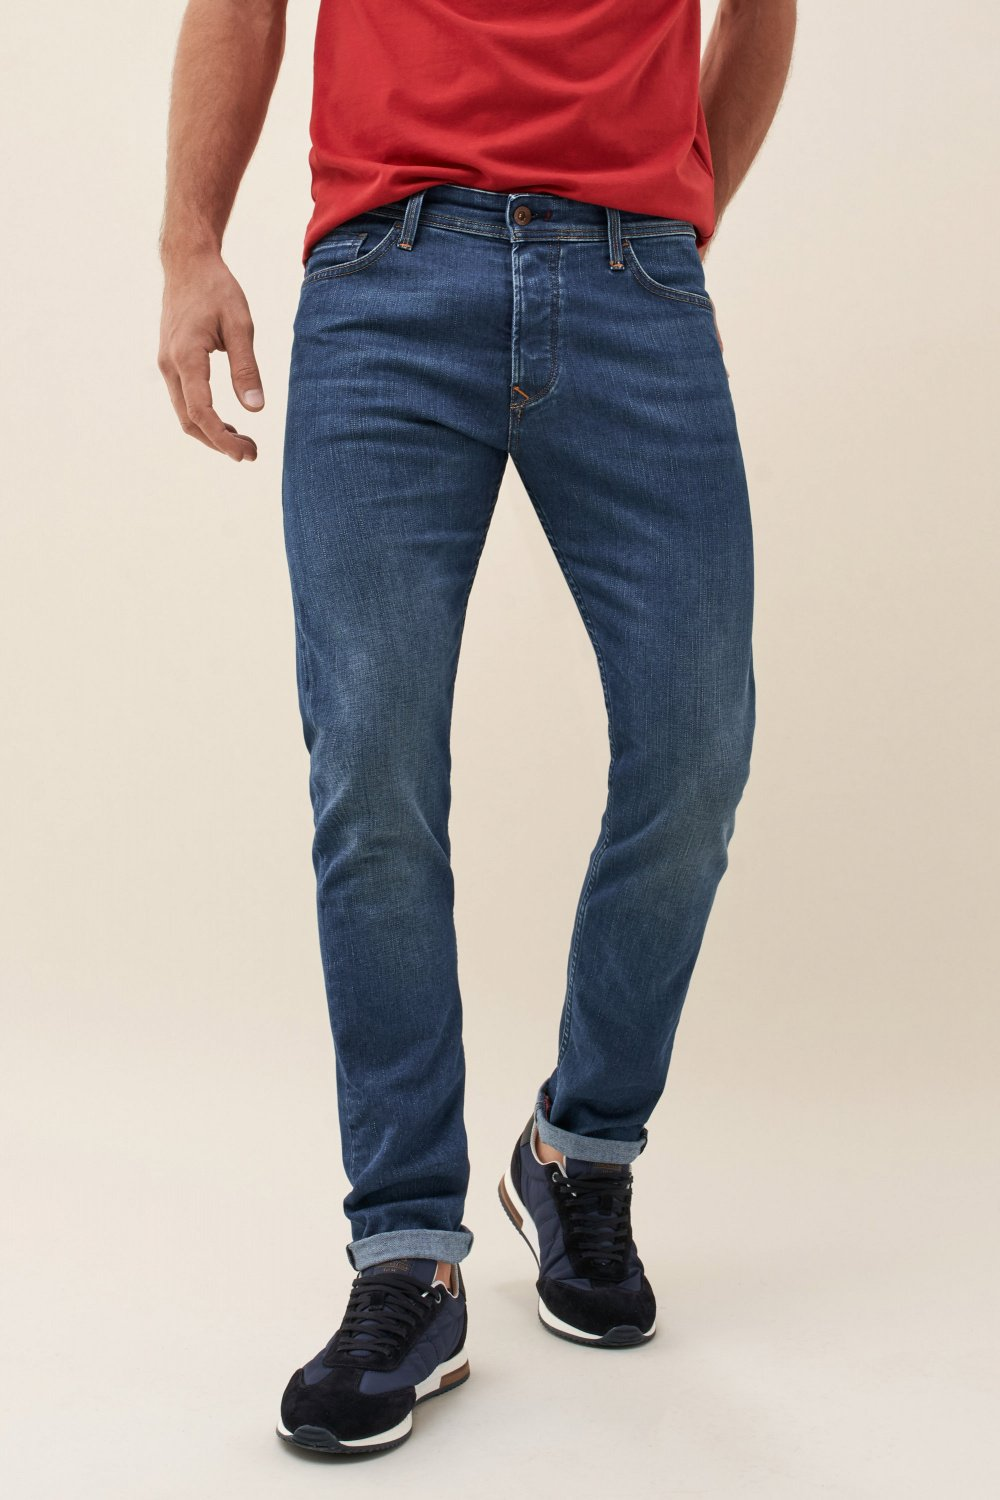 Slender slim carrot coolmax medium jeans - Salsa